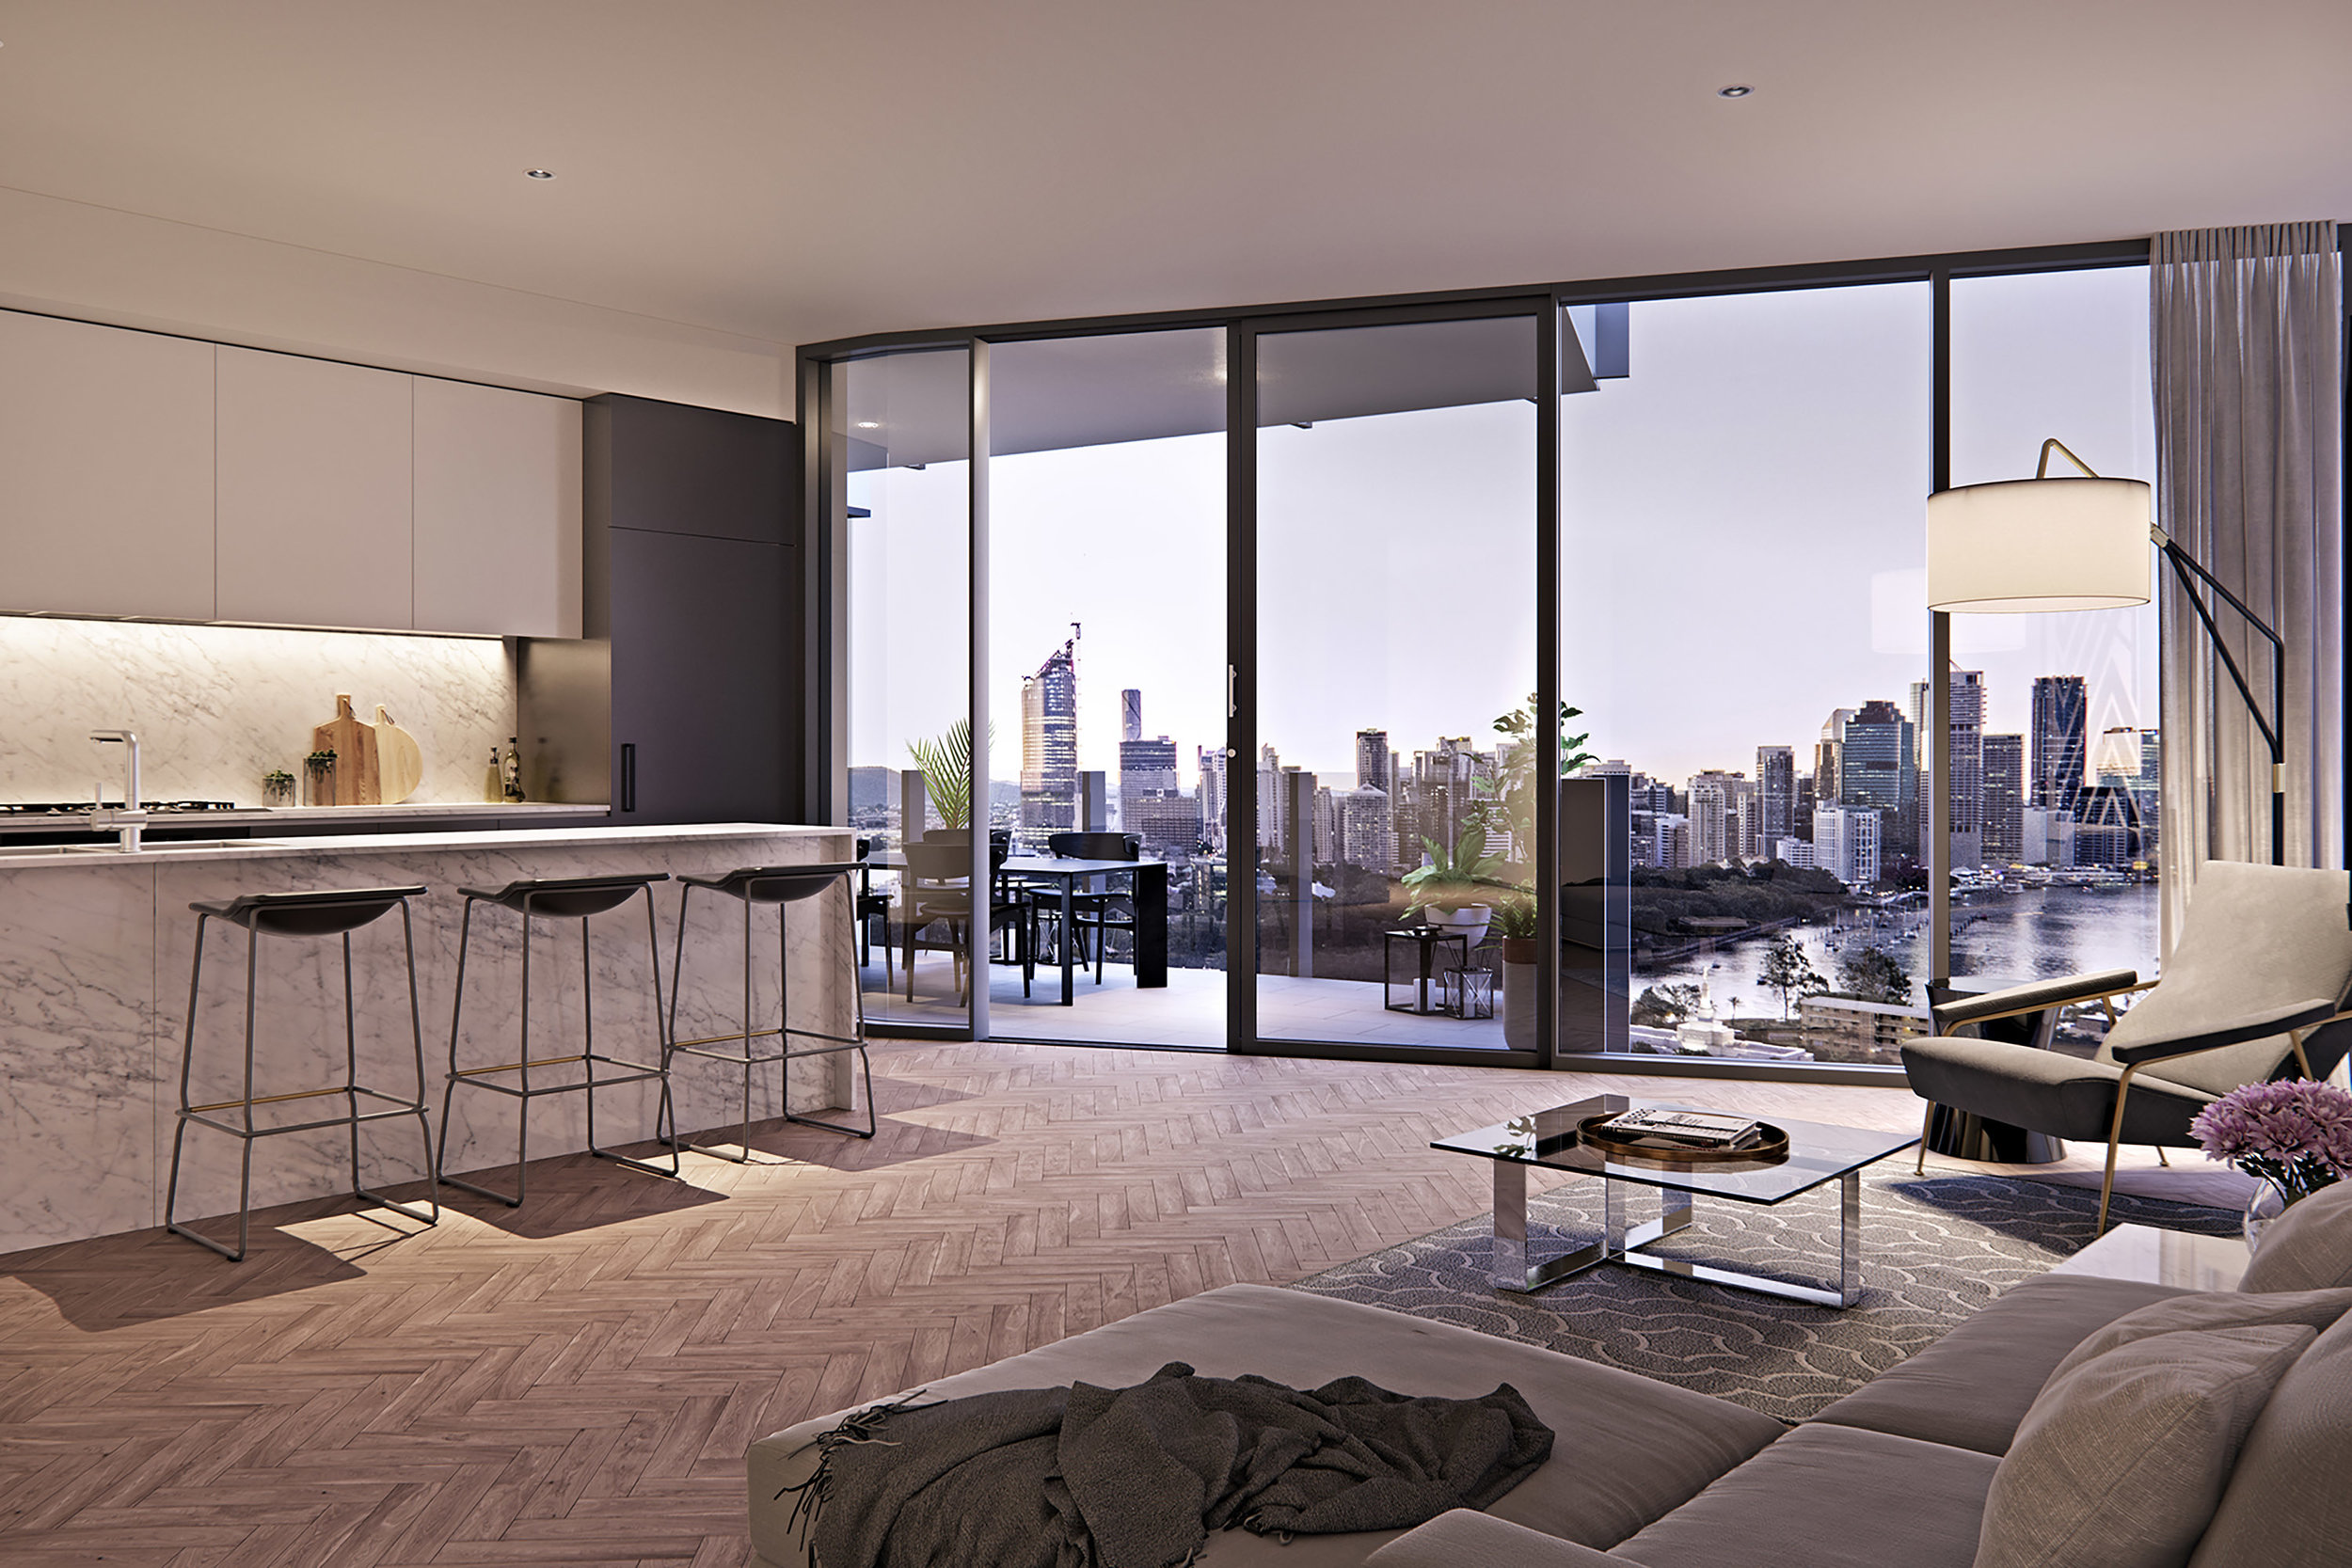 16036-Kangaroo Point_CGI09_Interior View 02_DR02_website.jpg